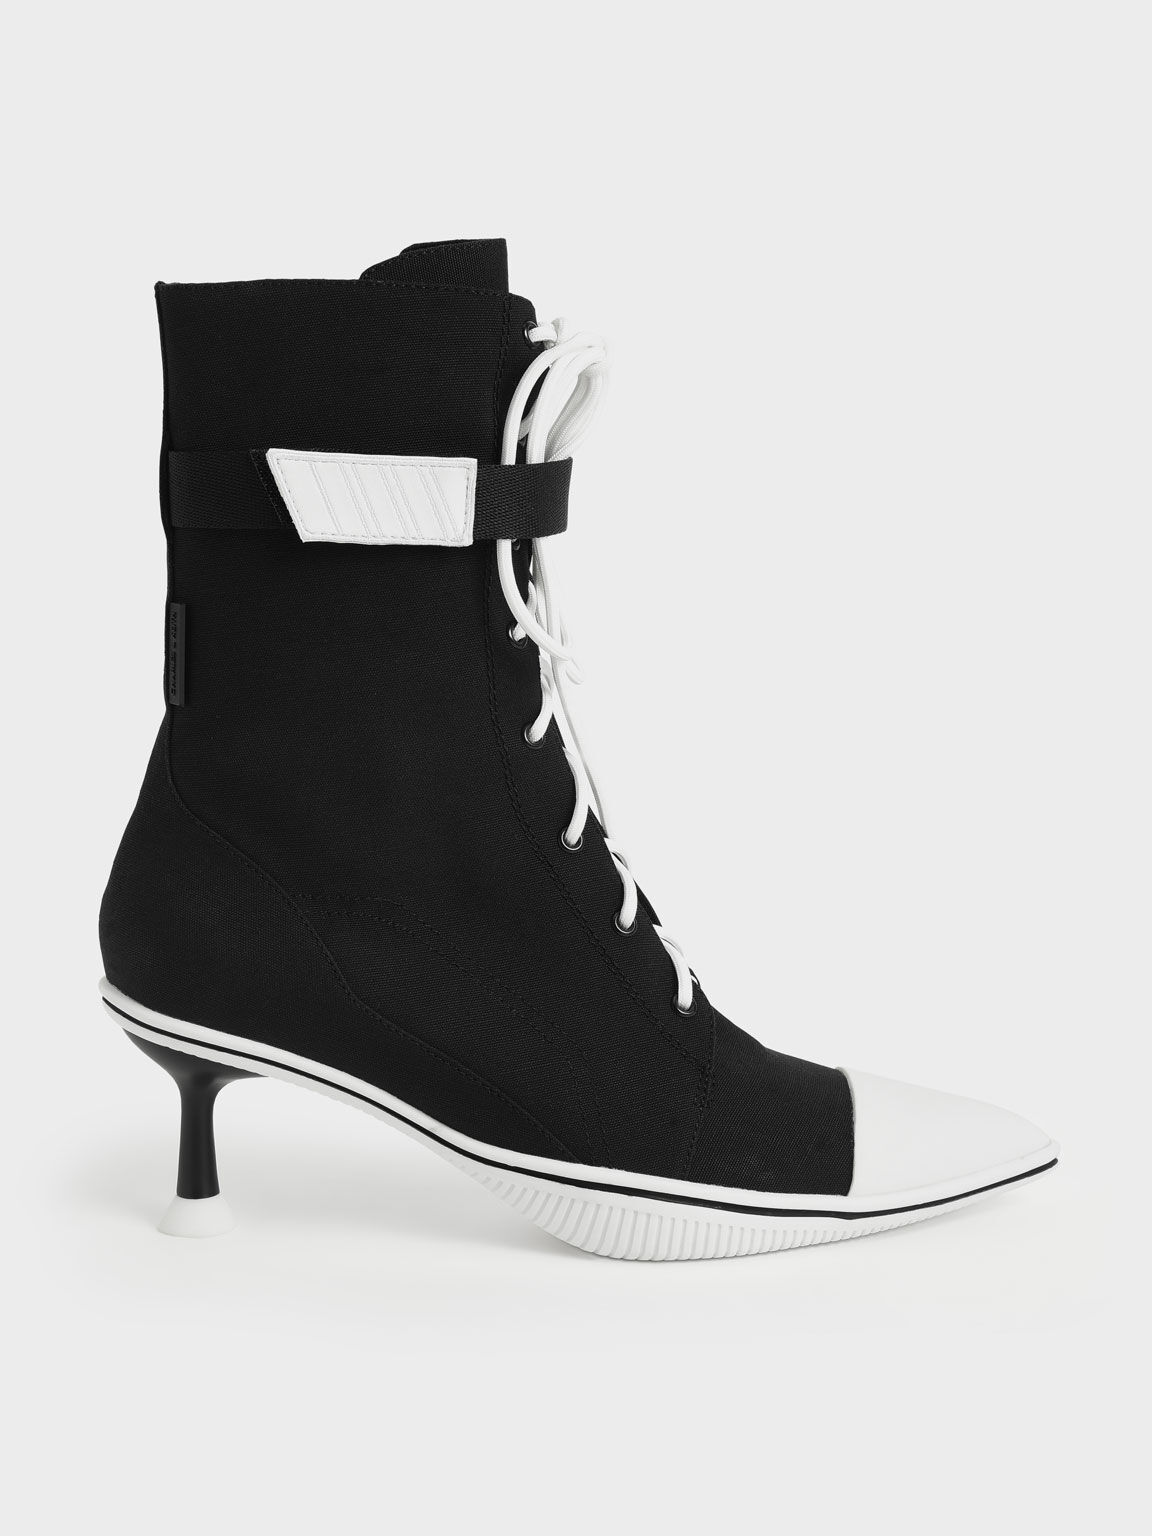 Recycled Cotton Lace-Up Ankle Boots, Black, hi-res